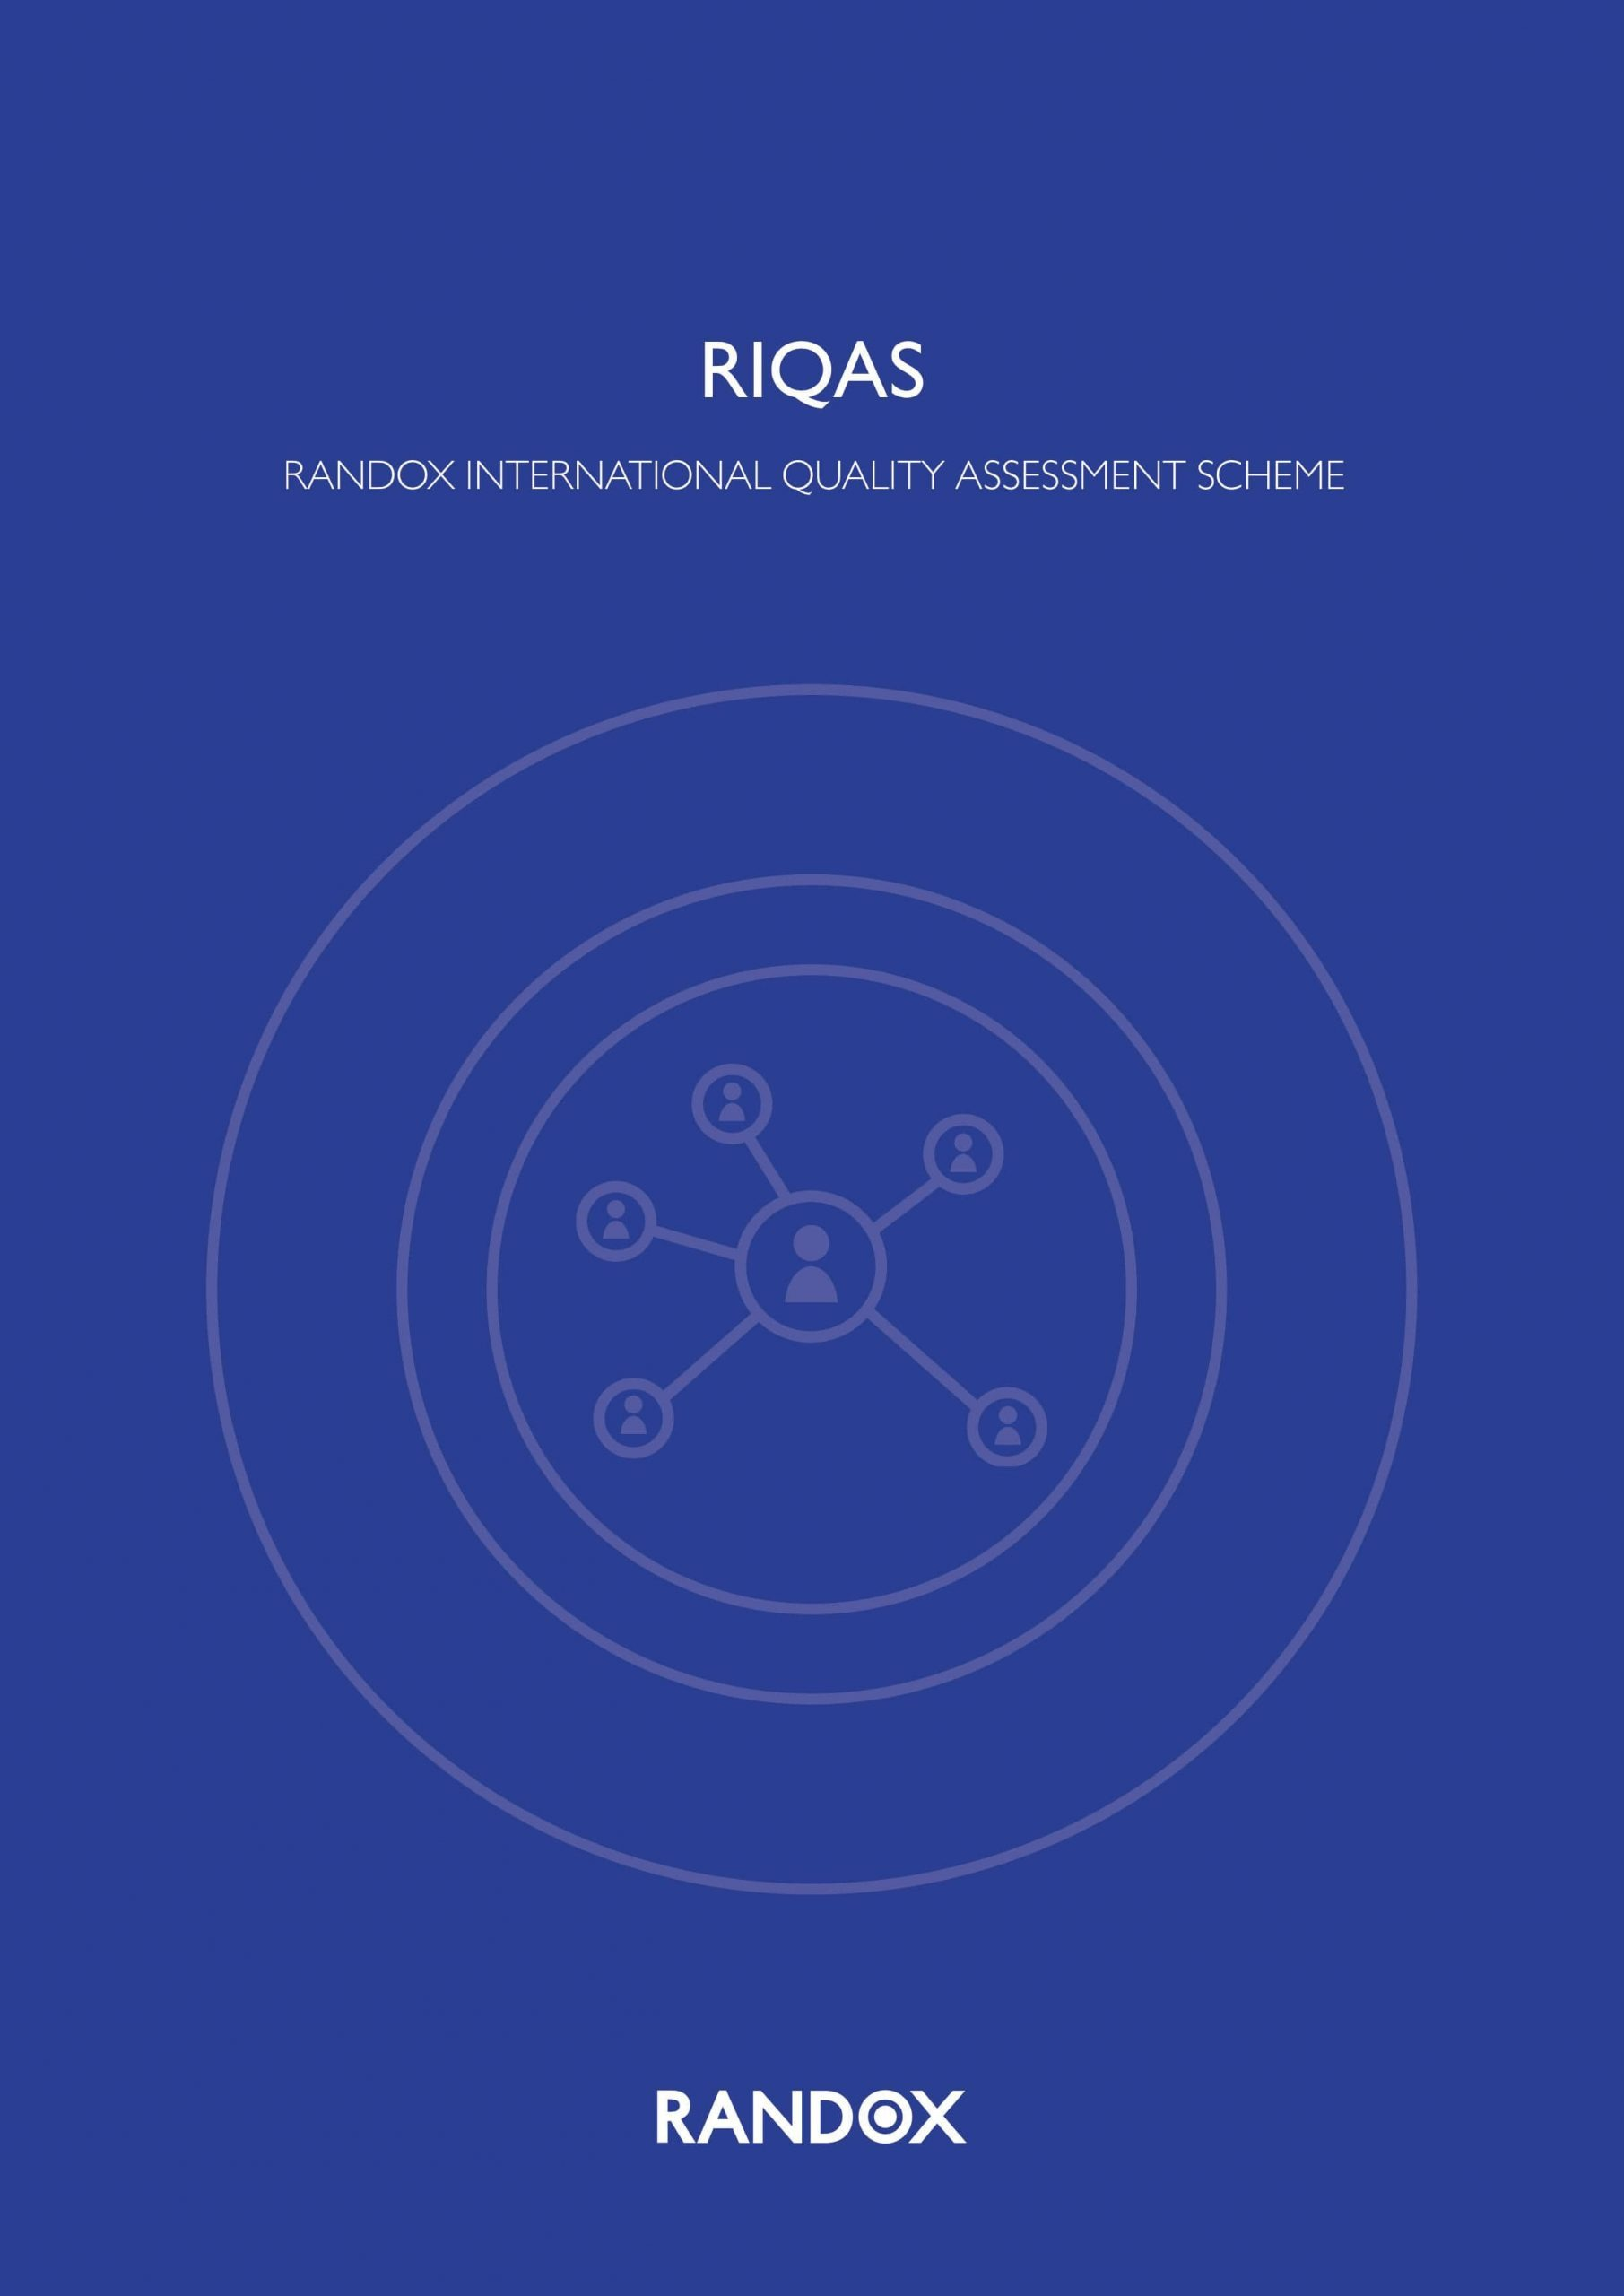 LT033 - RIQAS - Randox International Quality Assessment Scheme - Download